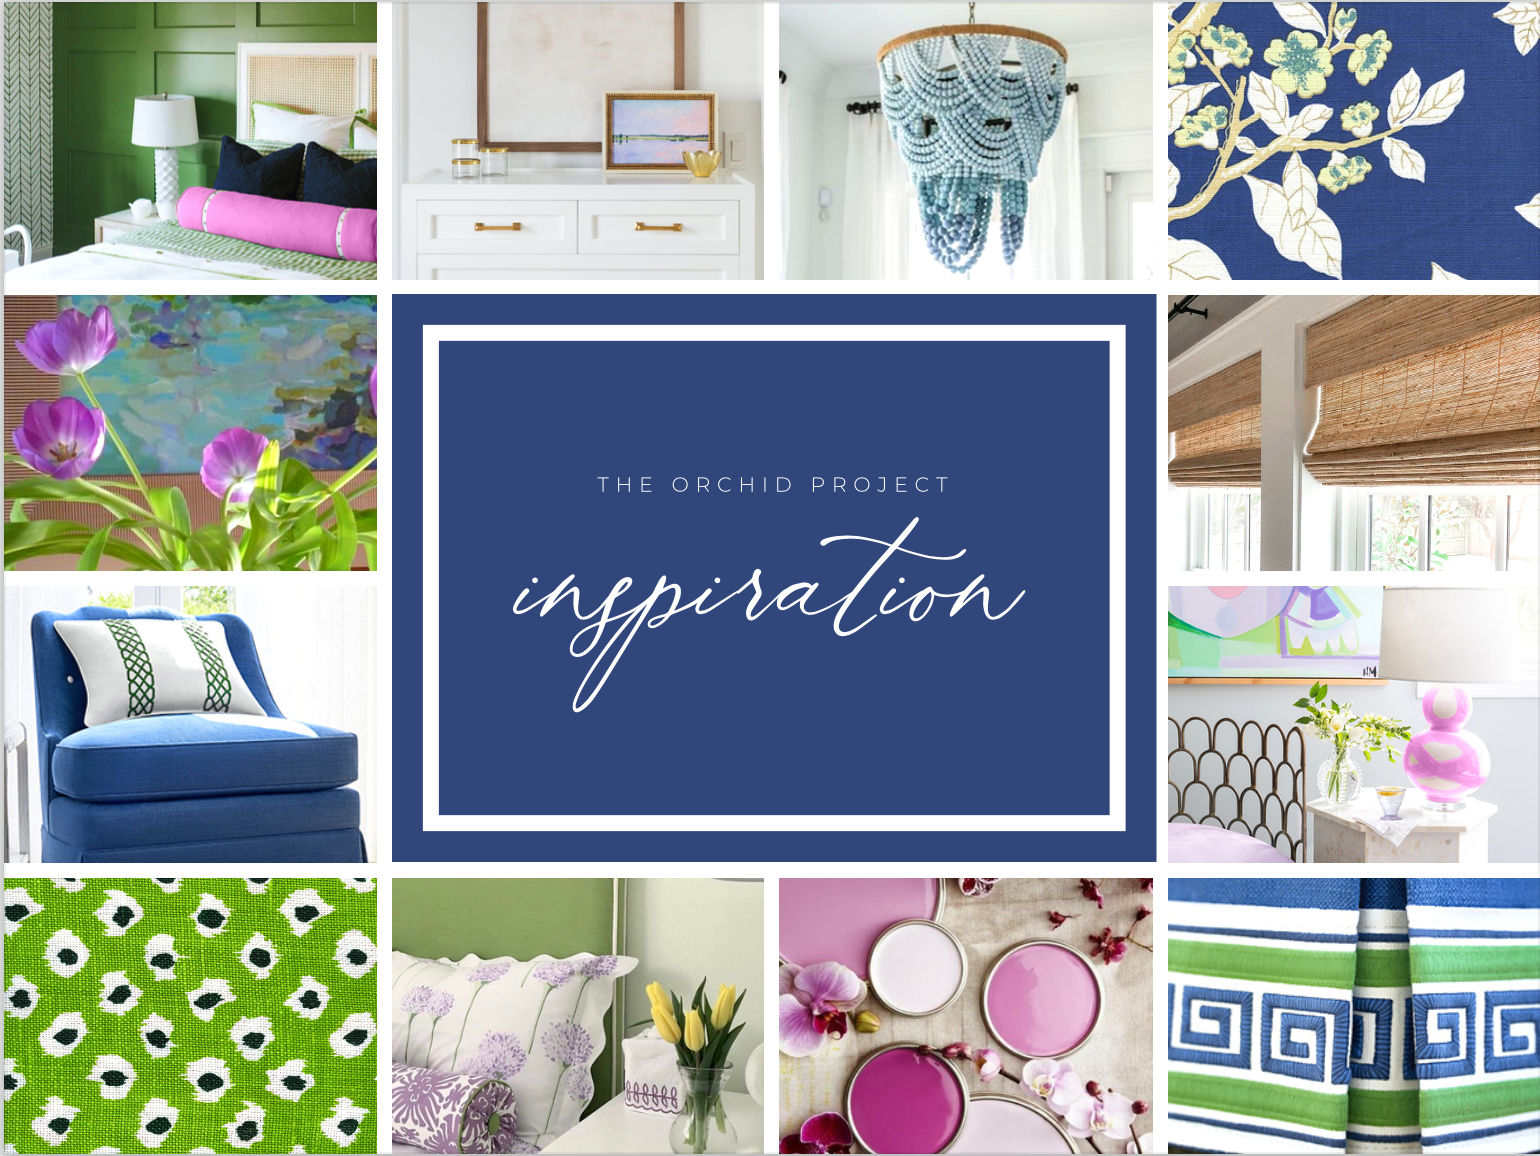 Blakely interior kingstown ri design create inerior design concept concept board orchid project blue green patterns beaded chandelier pink and purple paint samples